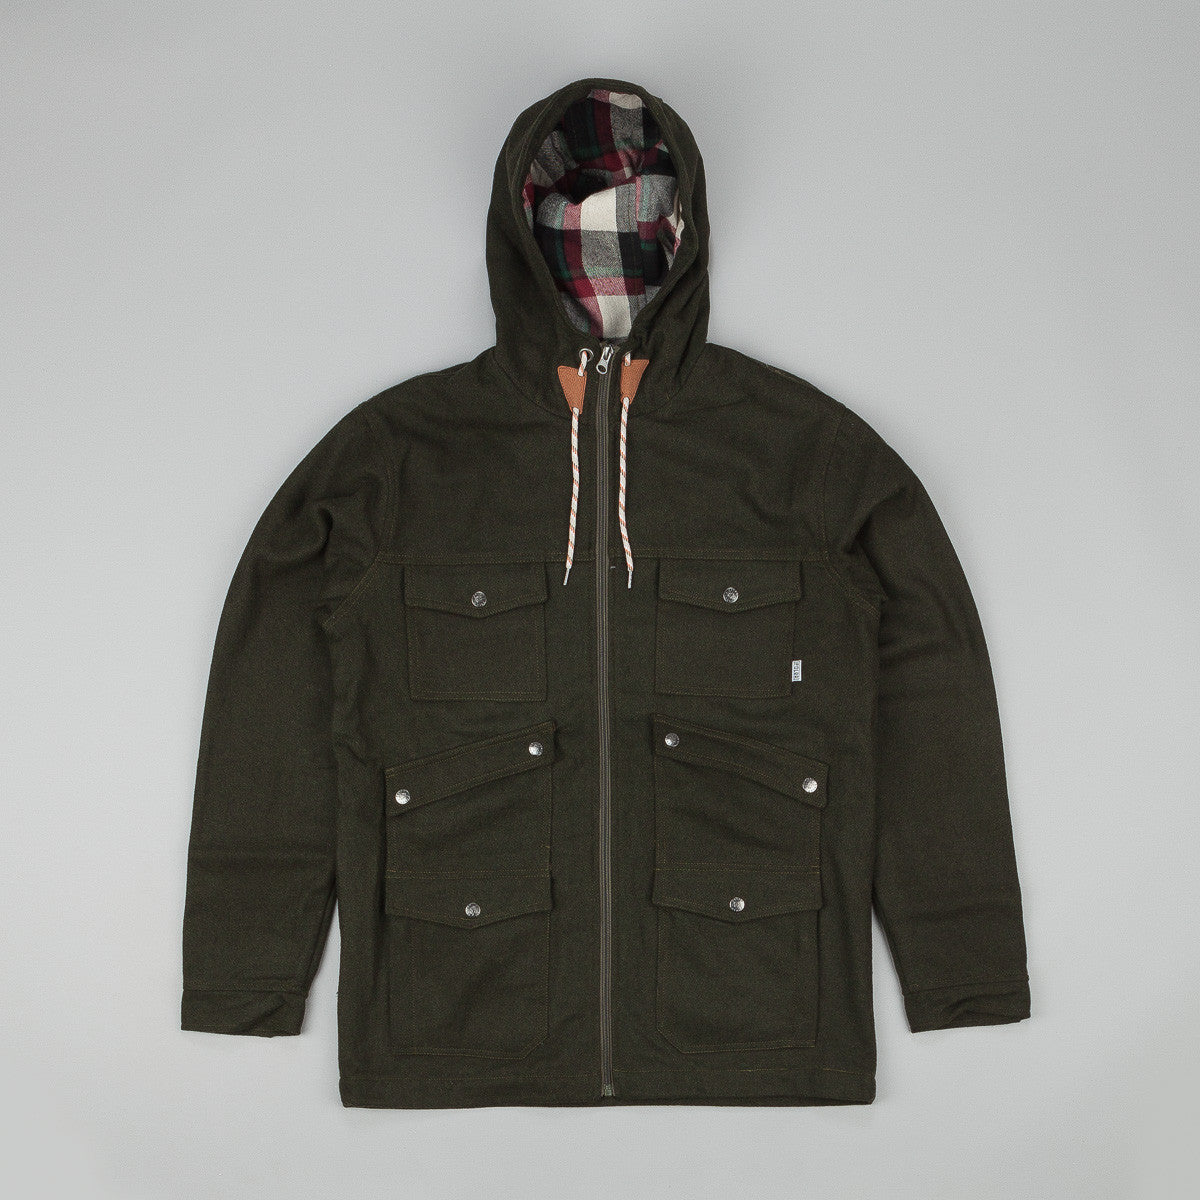 Poler Outpost Wool Jacket